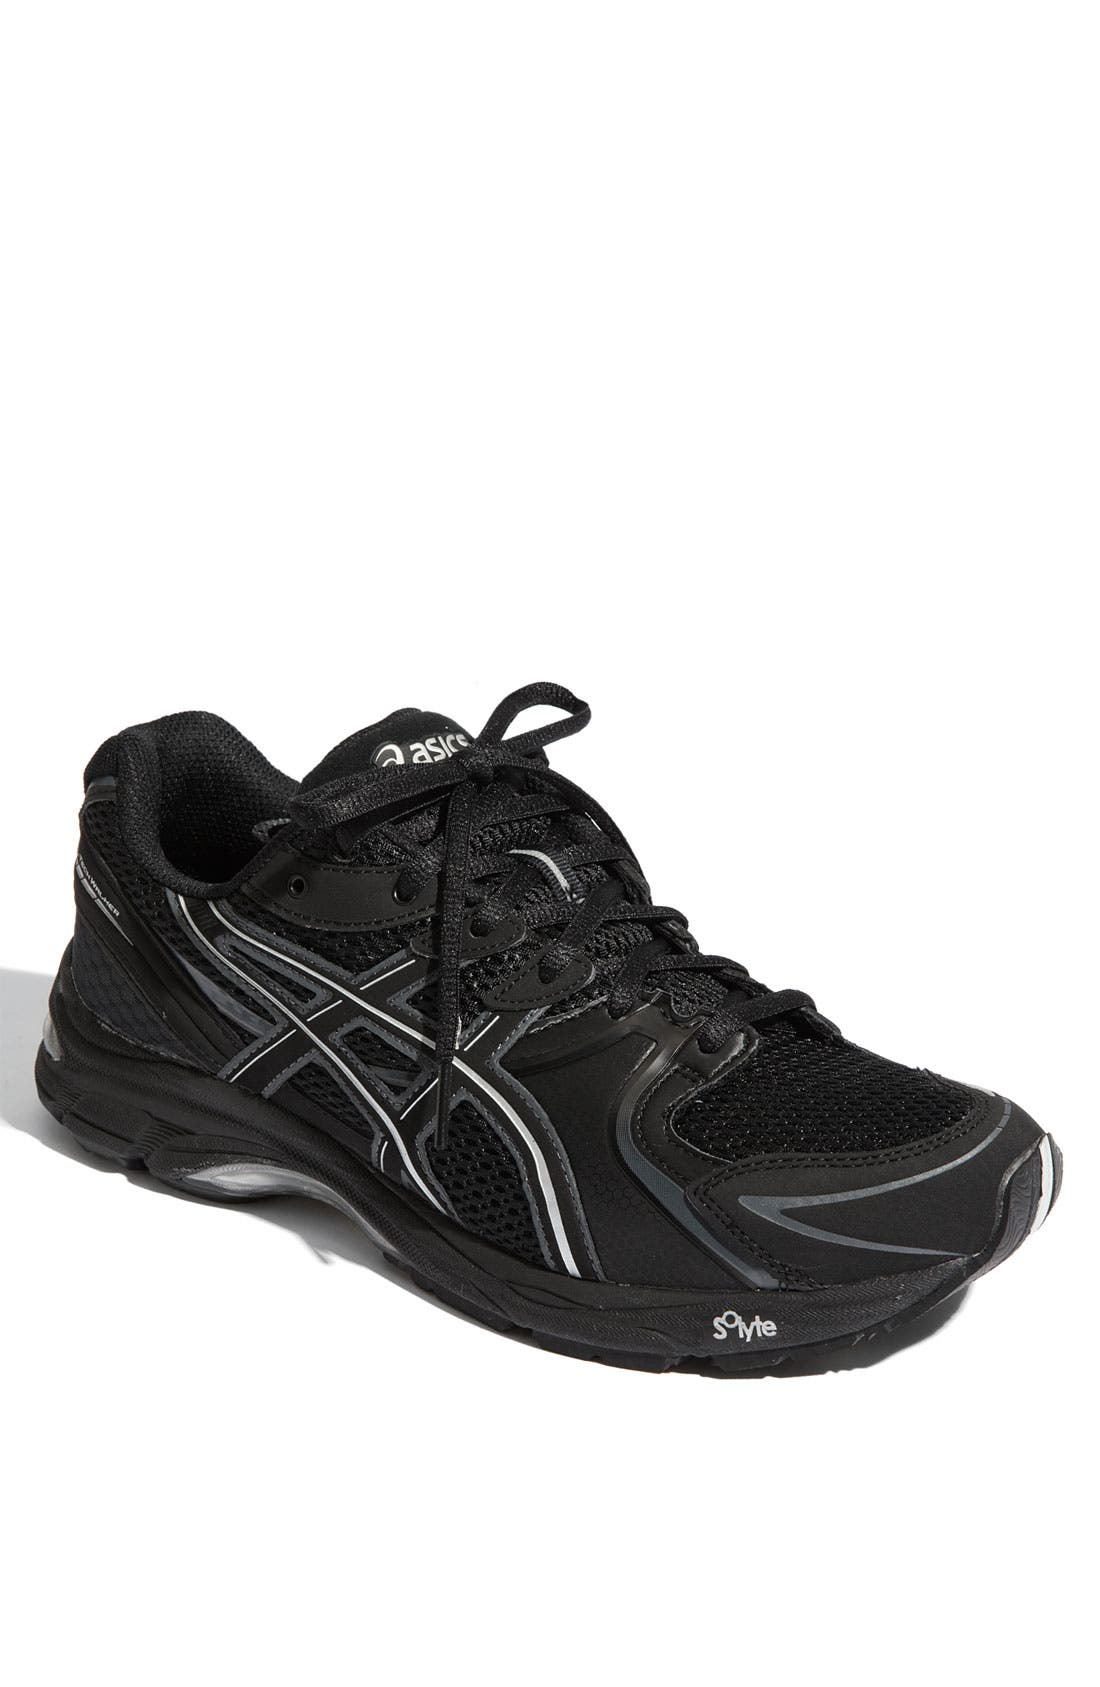 Main Image - ASICS® 'Gel-Tech Walker Neo' Walking Shoe (Men) (Online Only)